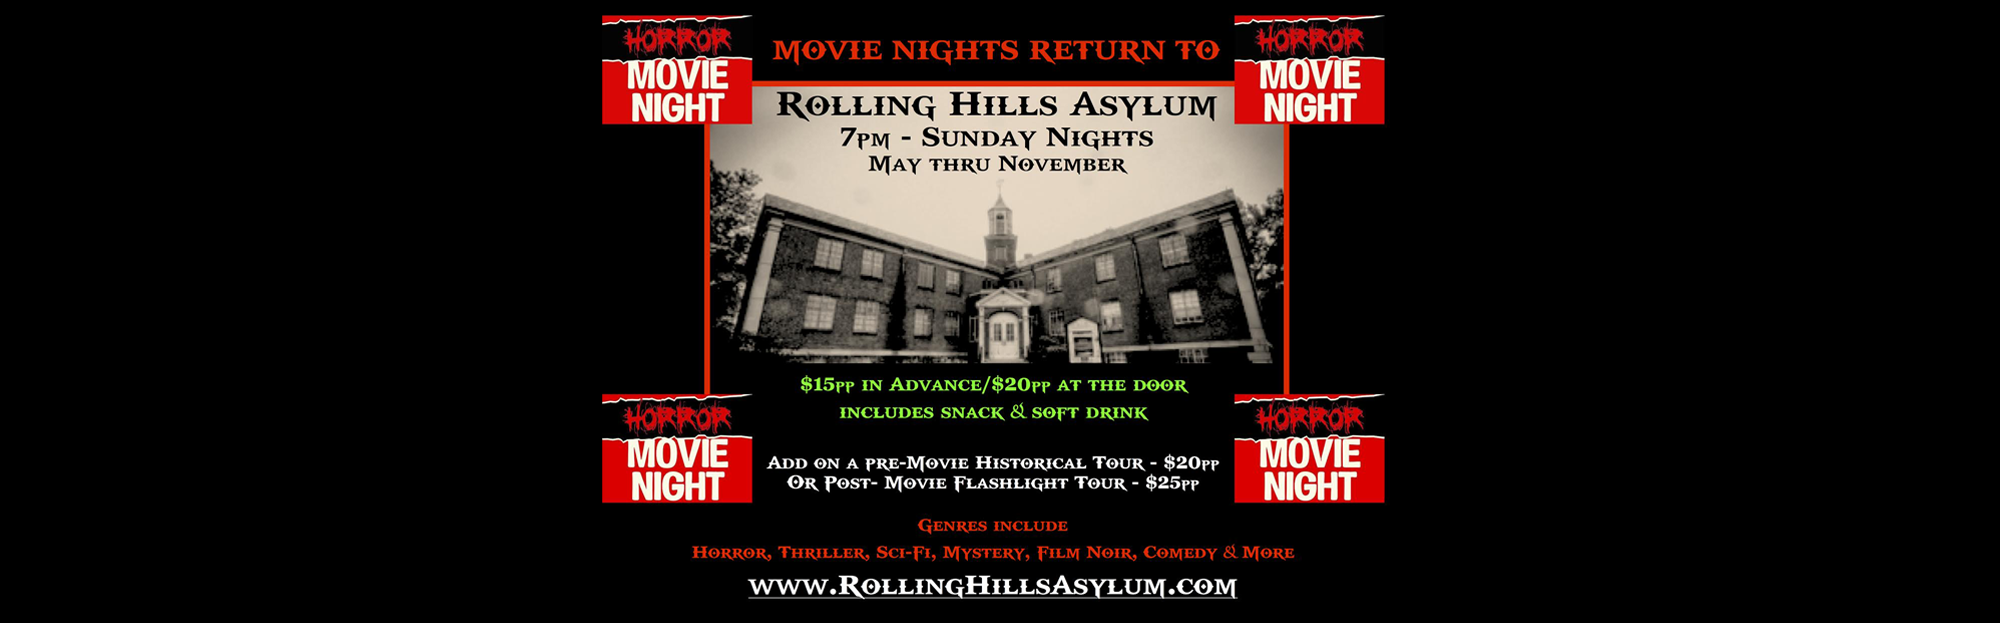 RHA Movie Night